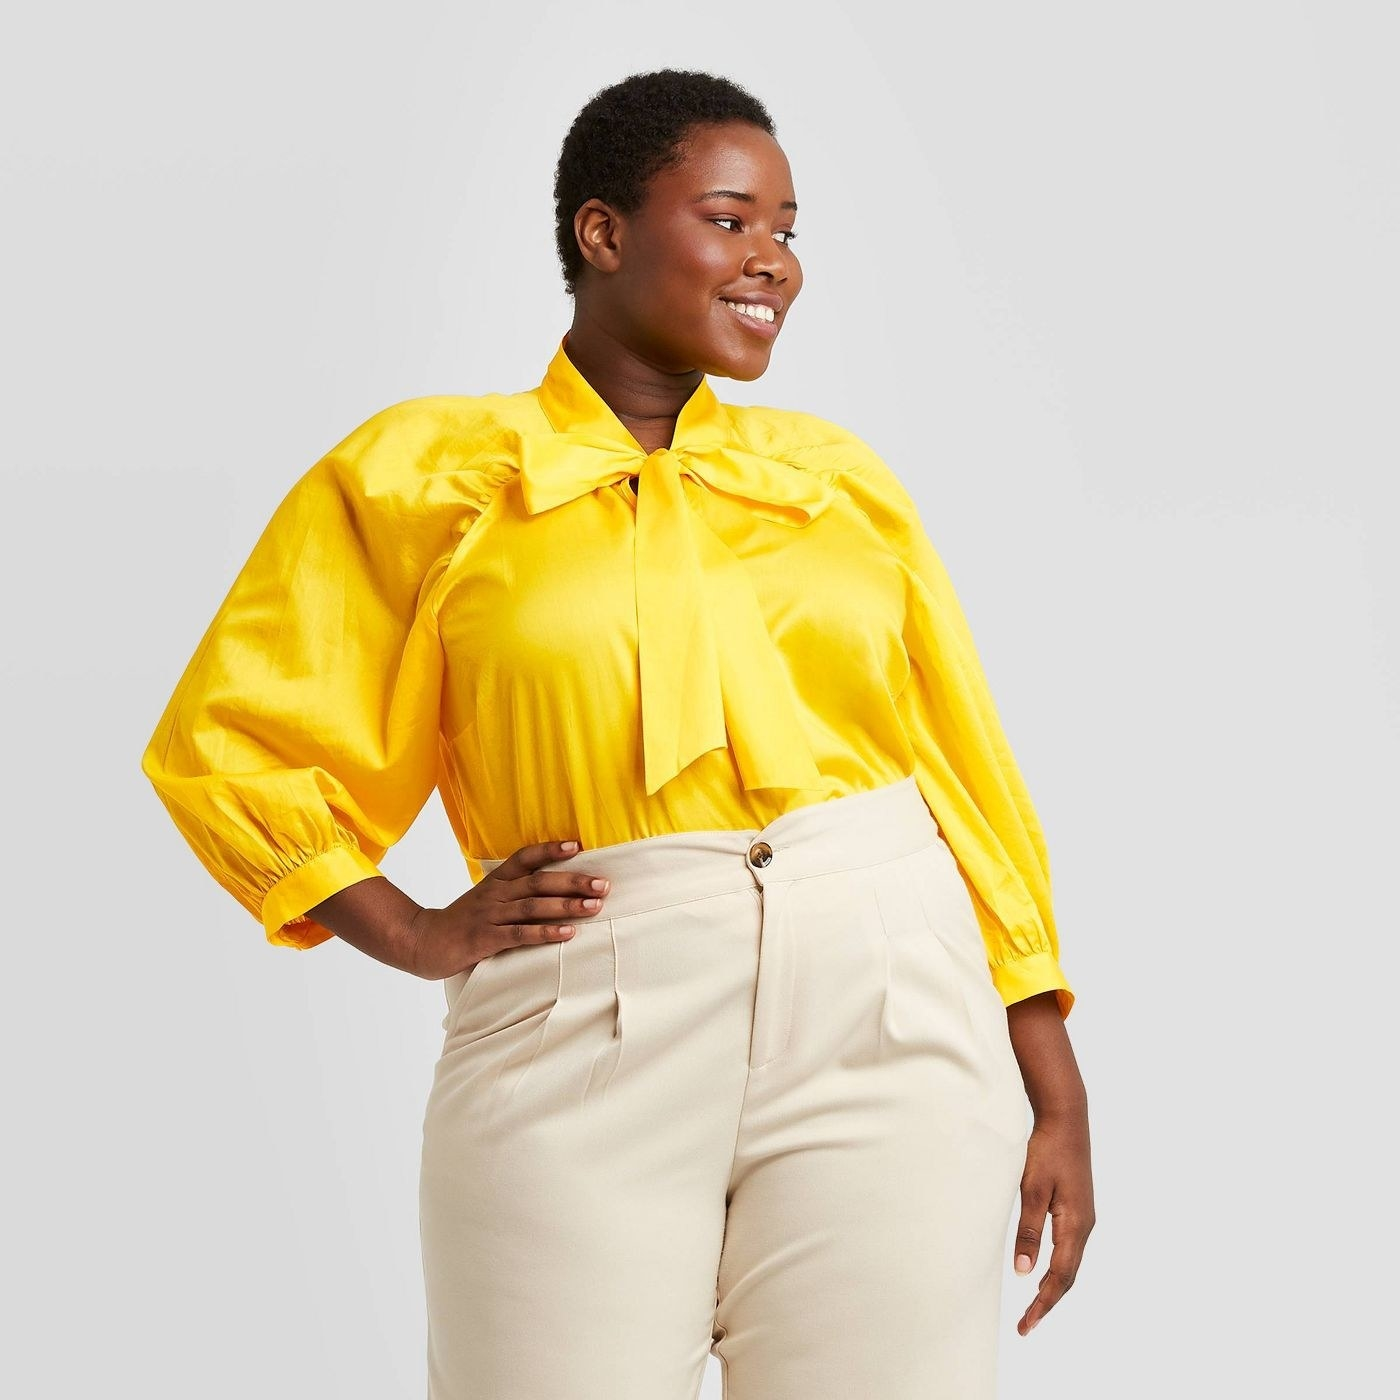 Model wearing the yellow blouse